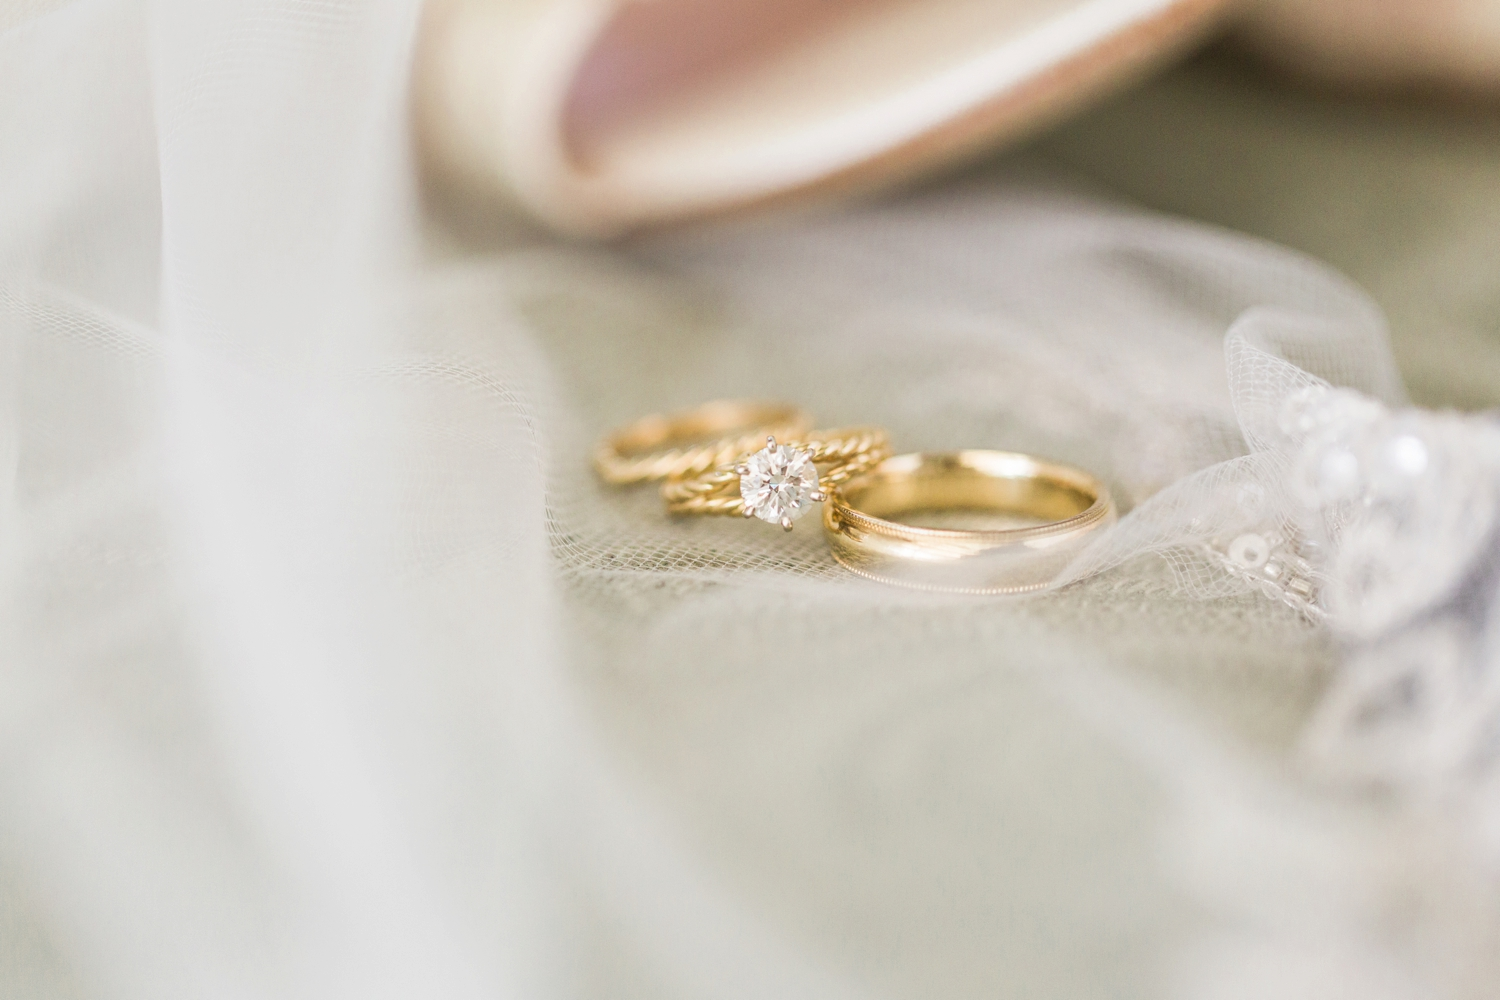 Wedding-at-The-Savannah-Center-West-Chester-Ohio-Photography-Chloe-Luka-Photography_7330.jpg